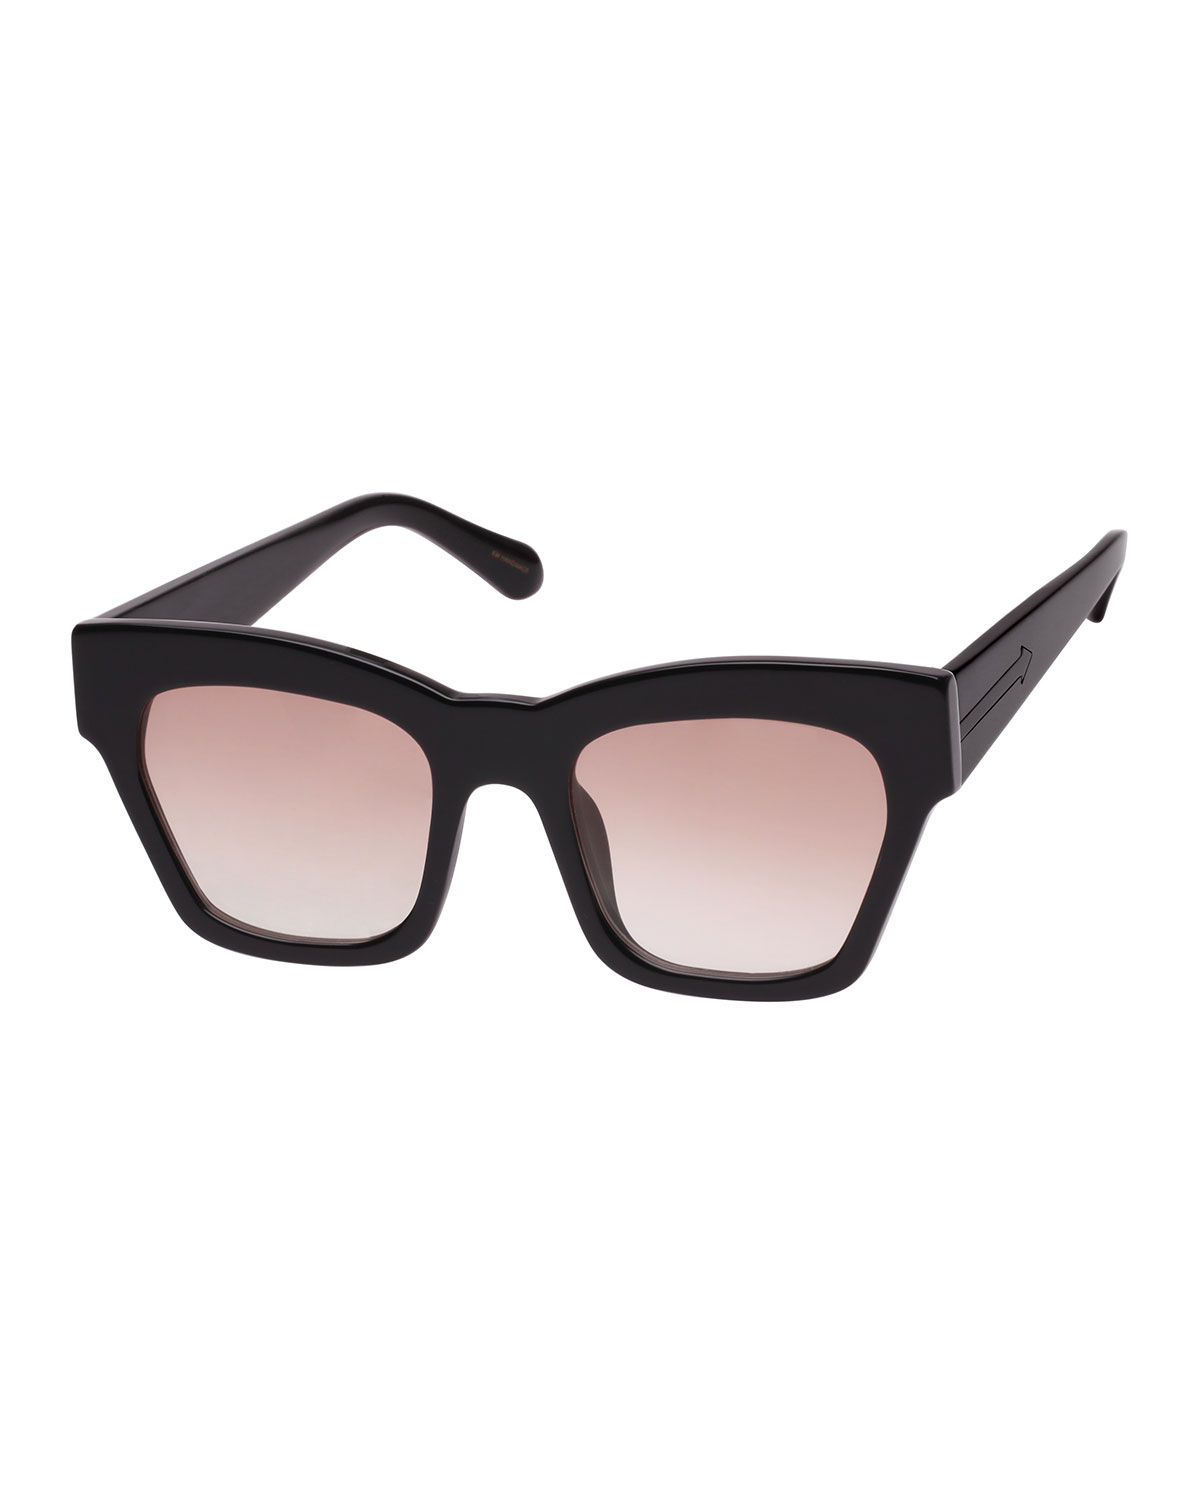 1586793c5930 Treasure Gradient Rectangle Sunglasses